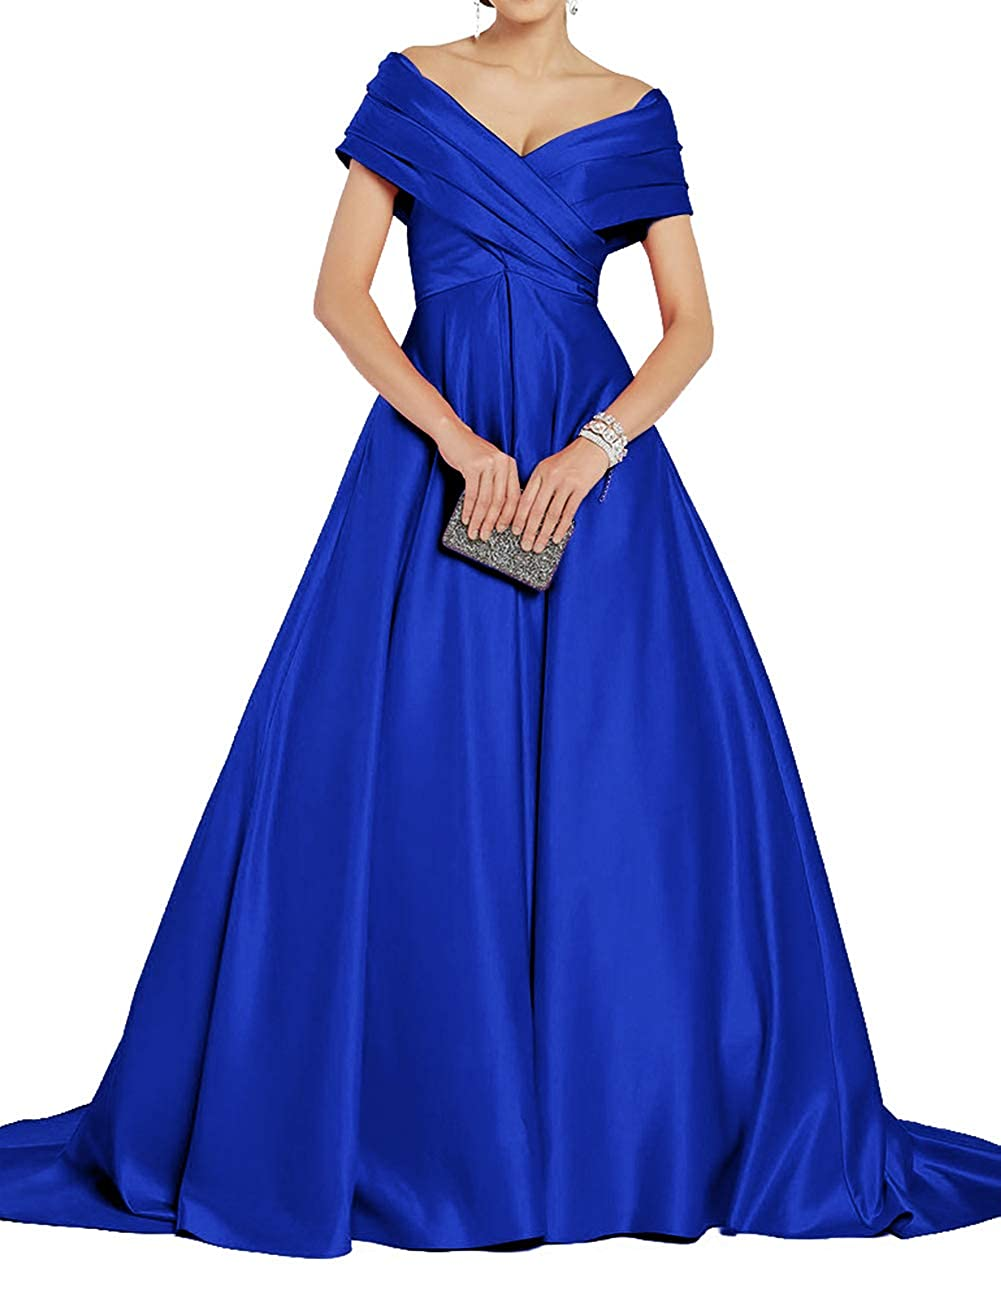 Royal bluee Uther Off Shoulder Prom Dresses Long ALine Satin Ball Gowns for Women Formal Evening